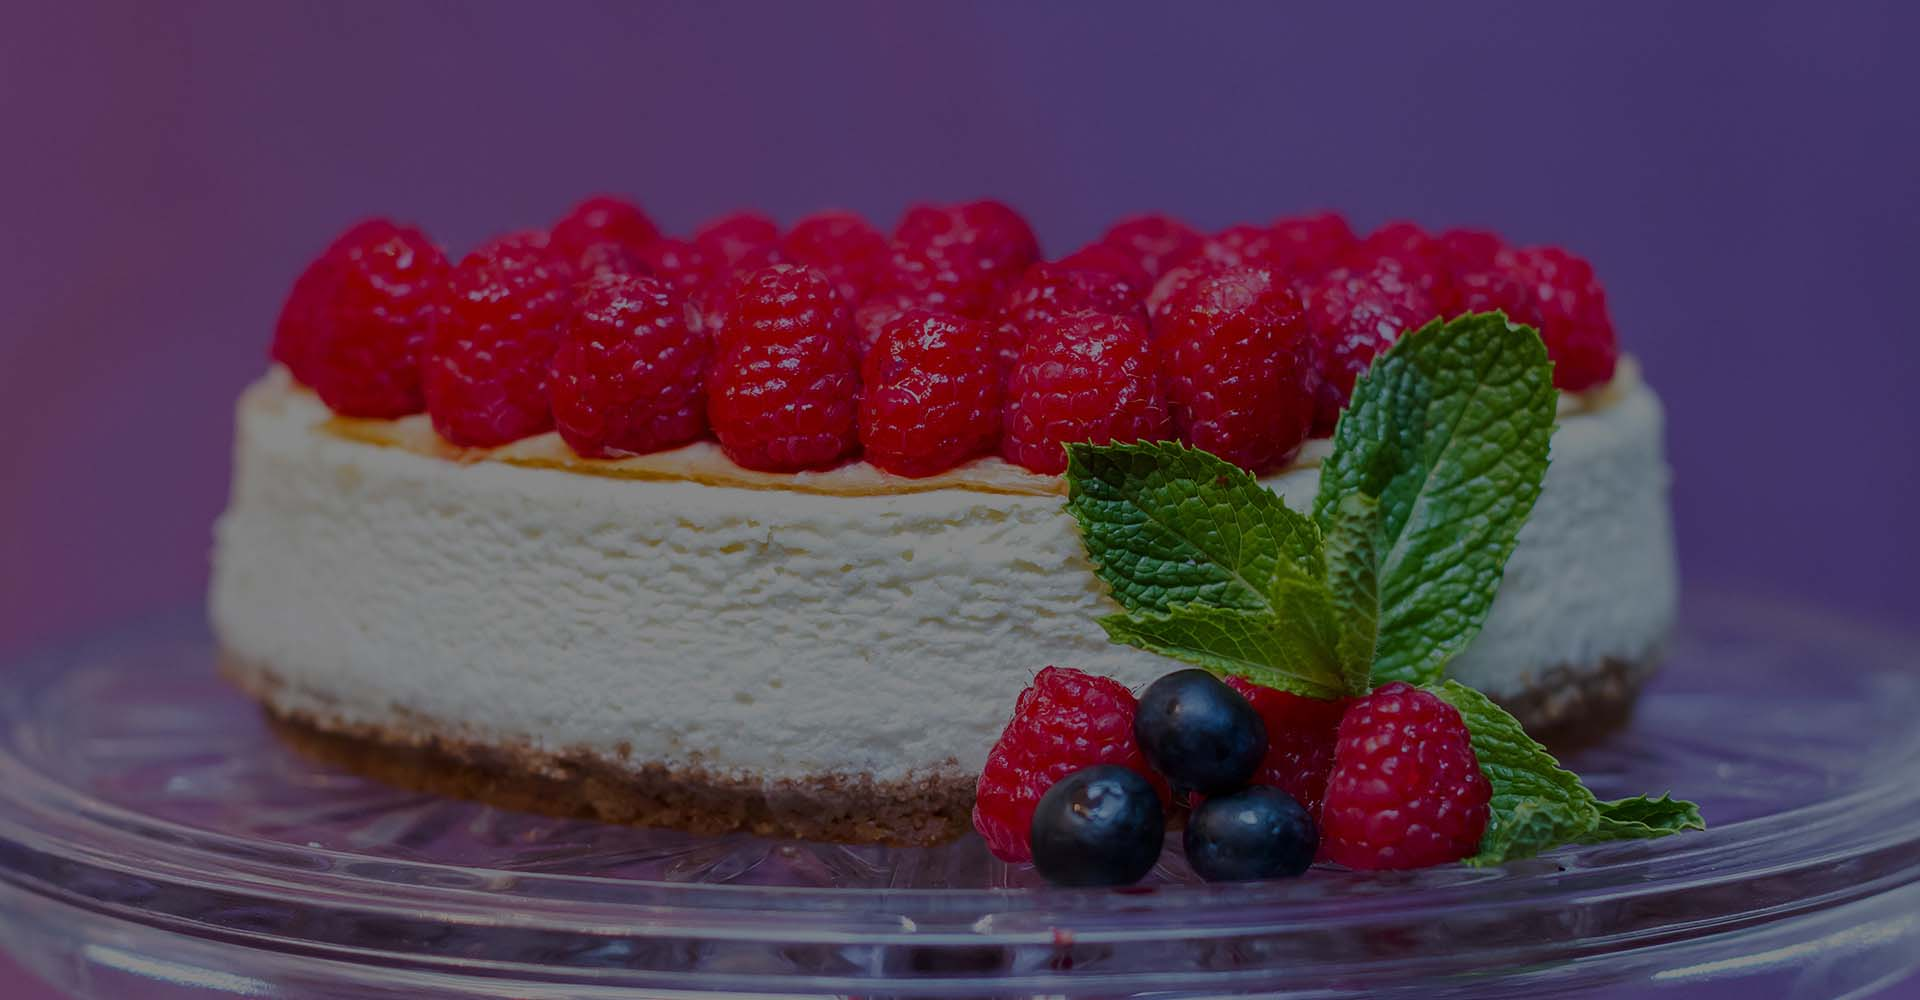 Sugar free cheesecakes and custom catered desserts